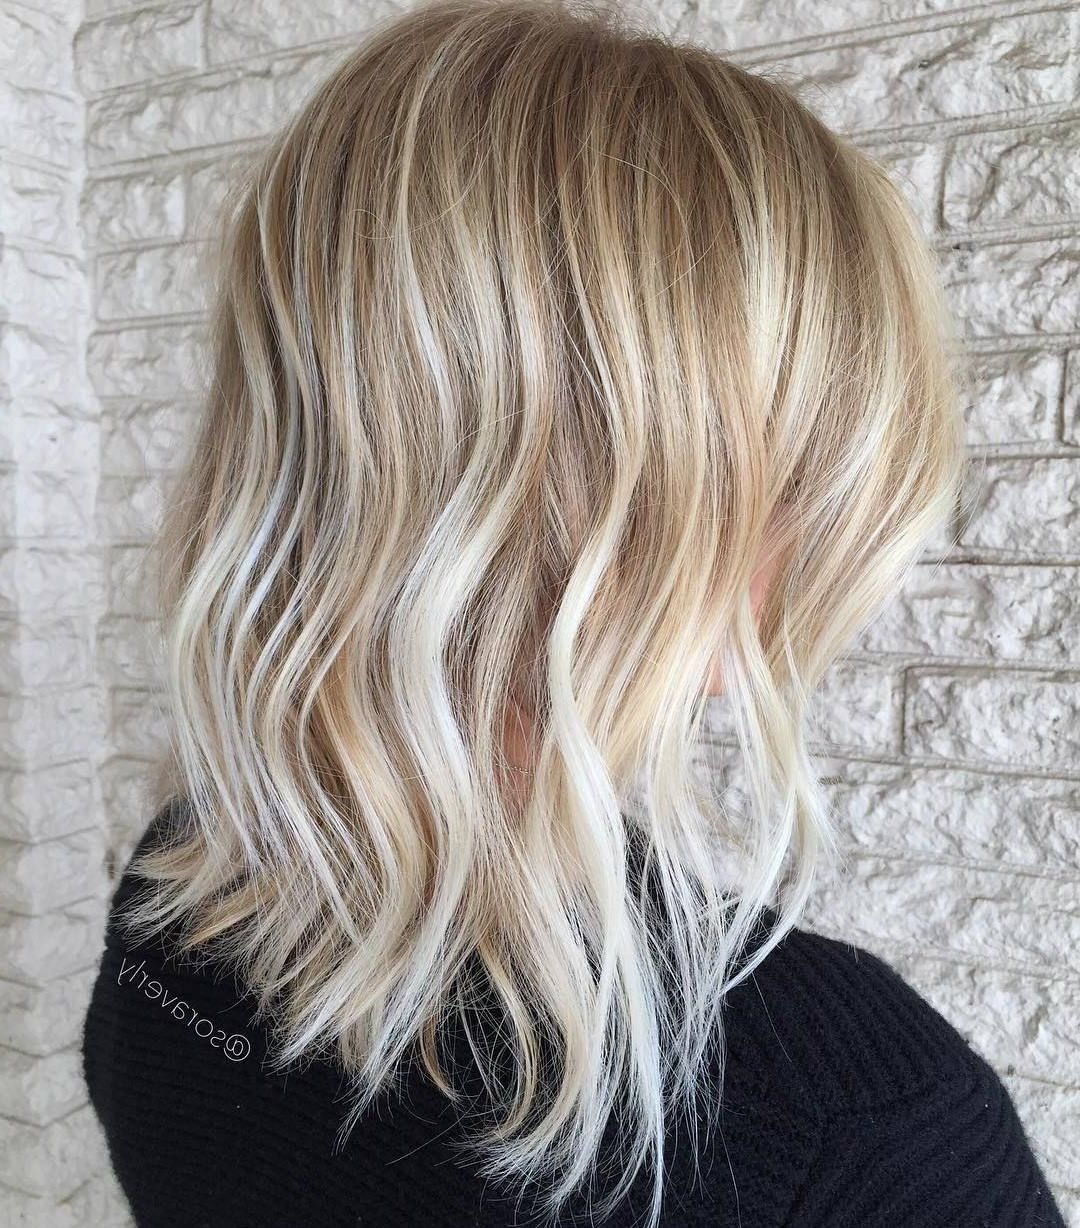 Pinterest Throughout Newest Medium Medium Hairstyles For Thin Hair (View 16 of 20)